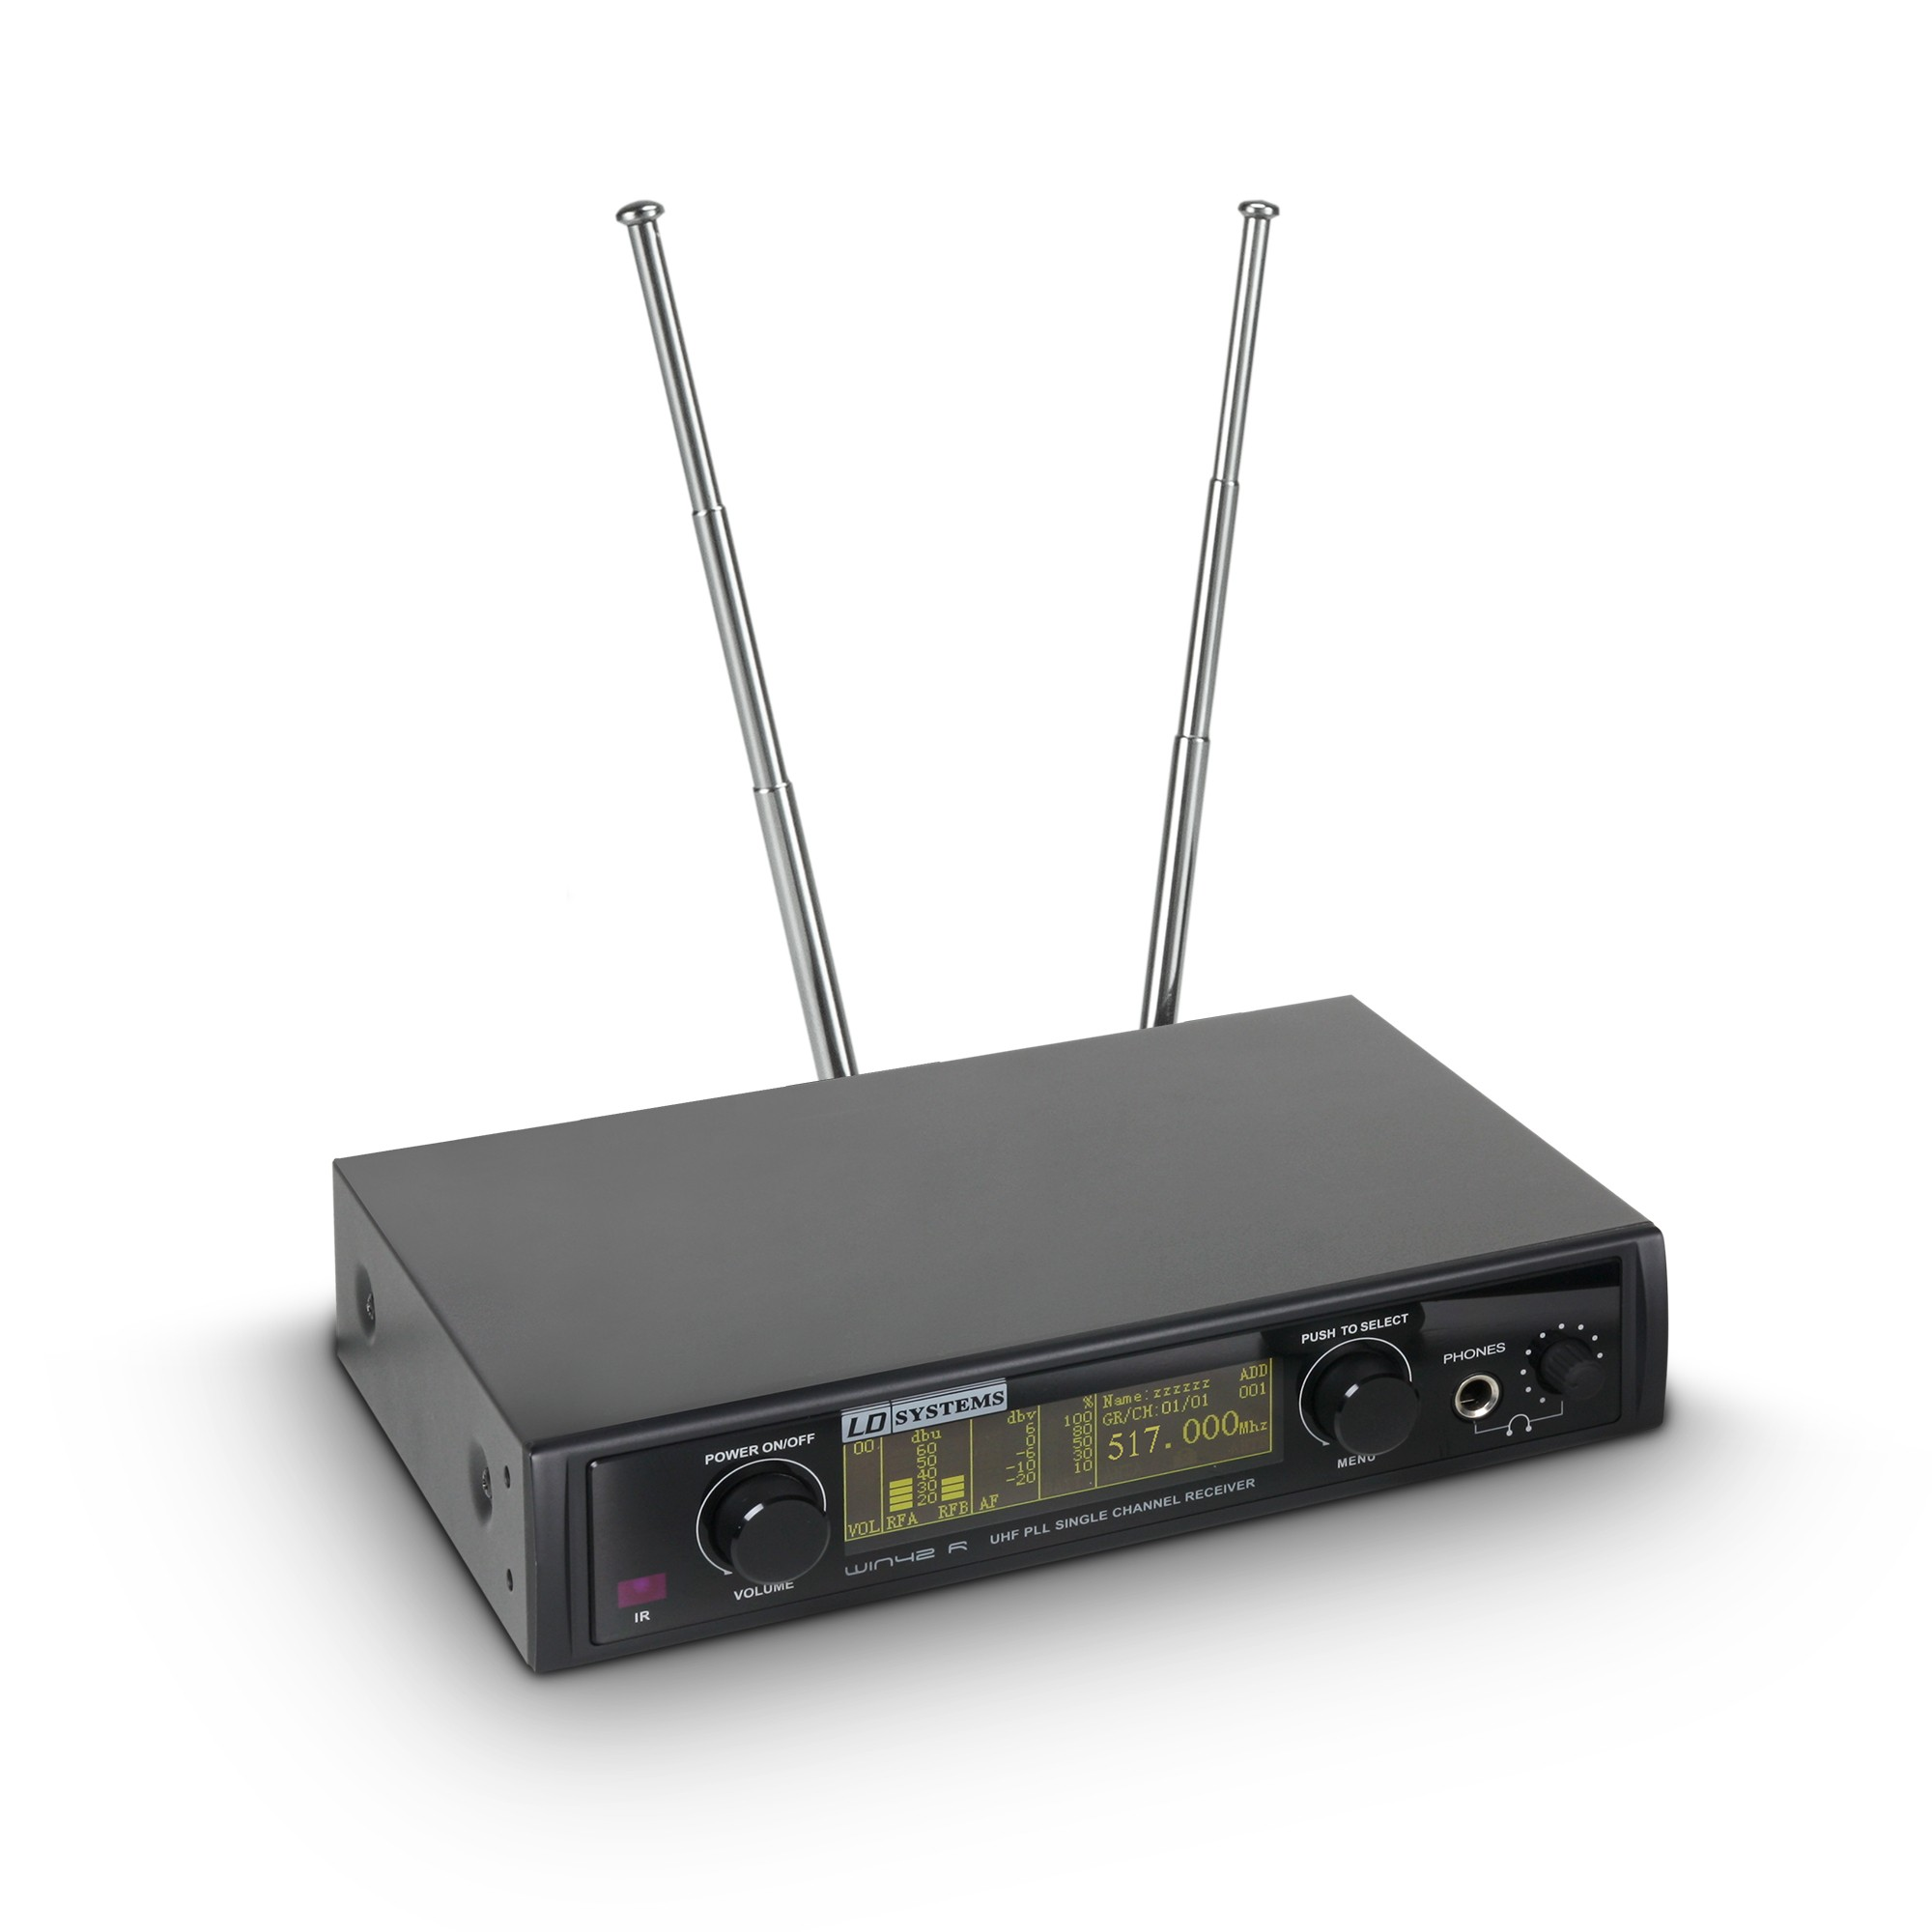 WIN 42 R B 5 Receiver for LD WIN 42 wireless microphone system